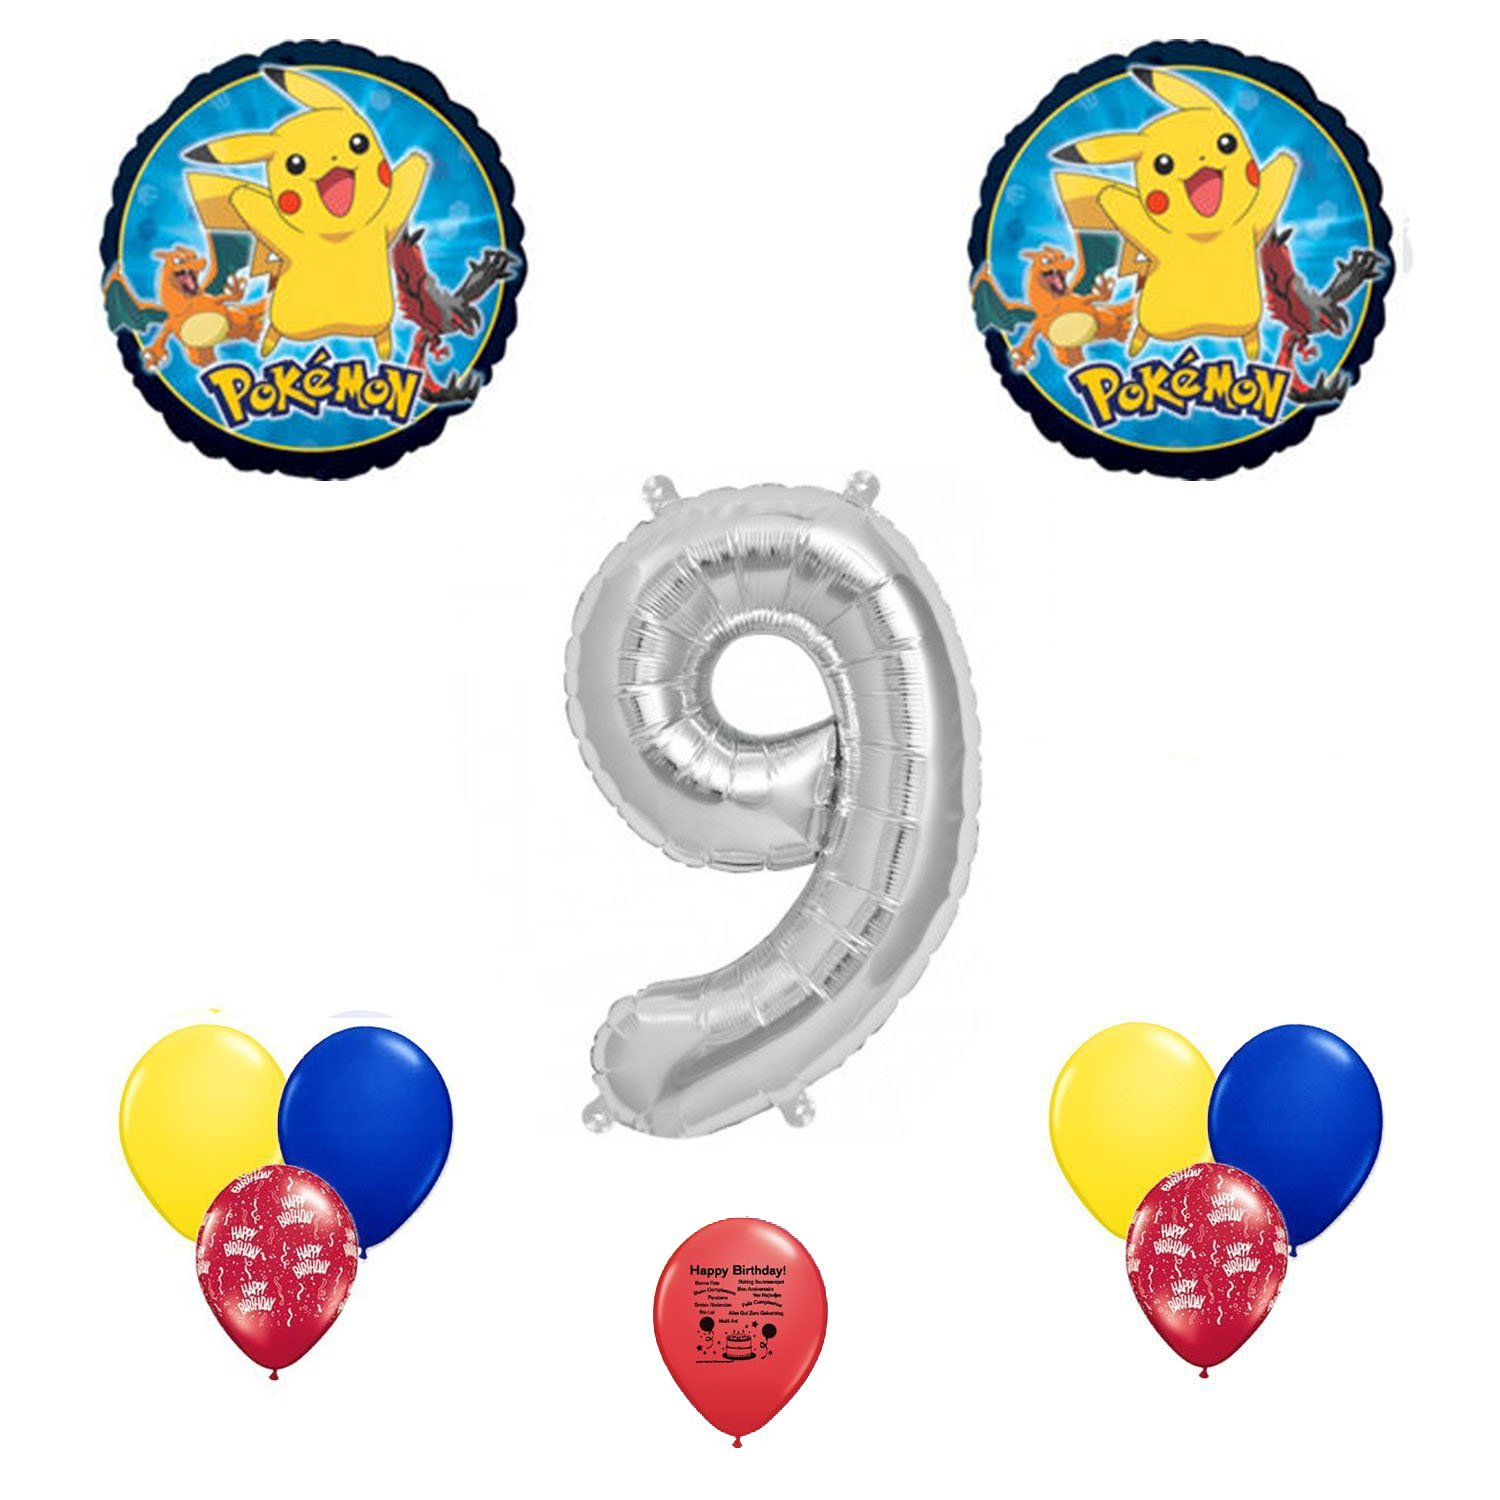 Pokemon go happy 9th birthday balloon decoration kit for Balloon decoration kits